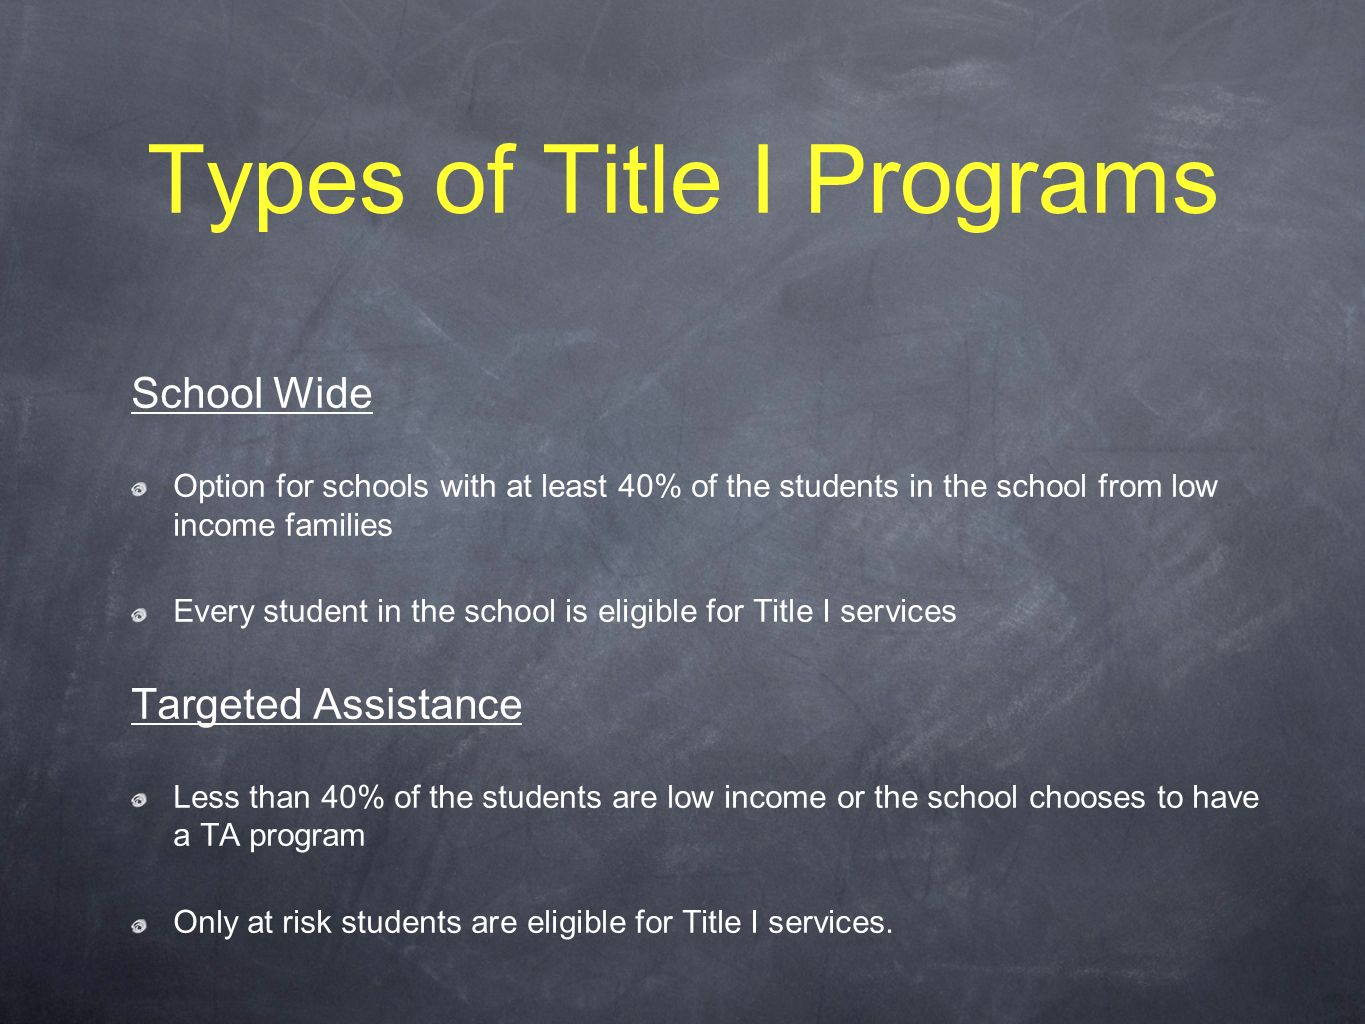 Types of Title I Programs School Wide Option for schools with at least 40% of the students in the school from low income families Every student in the school is eligible for Title I services Targeted Assistance Less than 40% of the students are low income or the school chooses to have a TA program Only at risk students are eligible for Title I services.